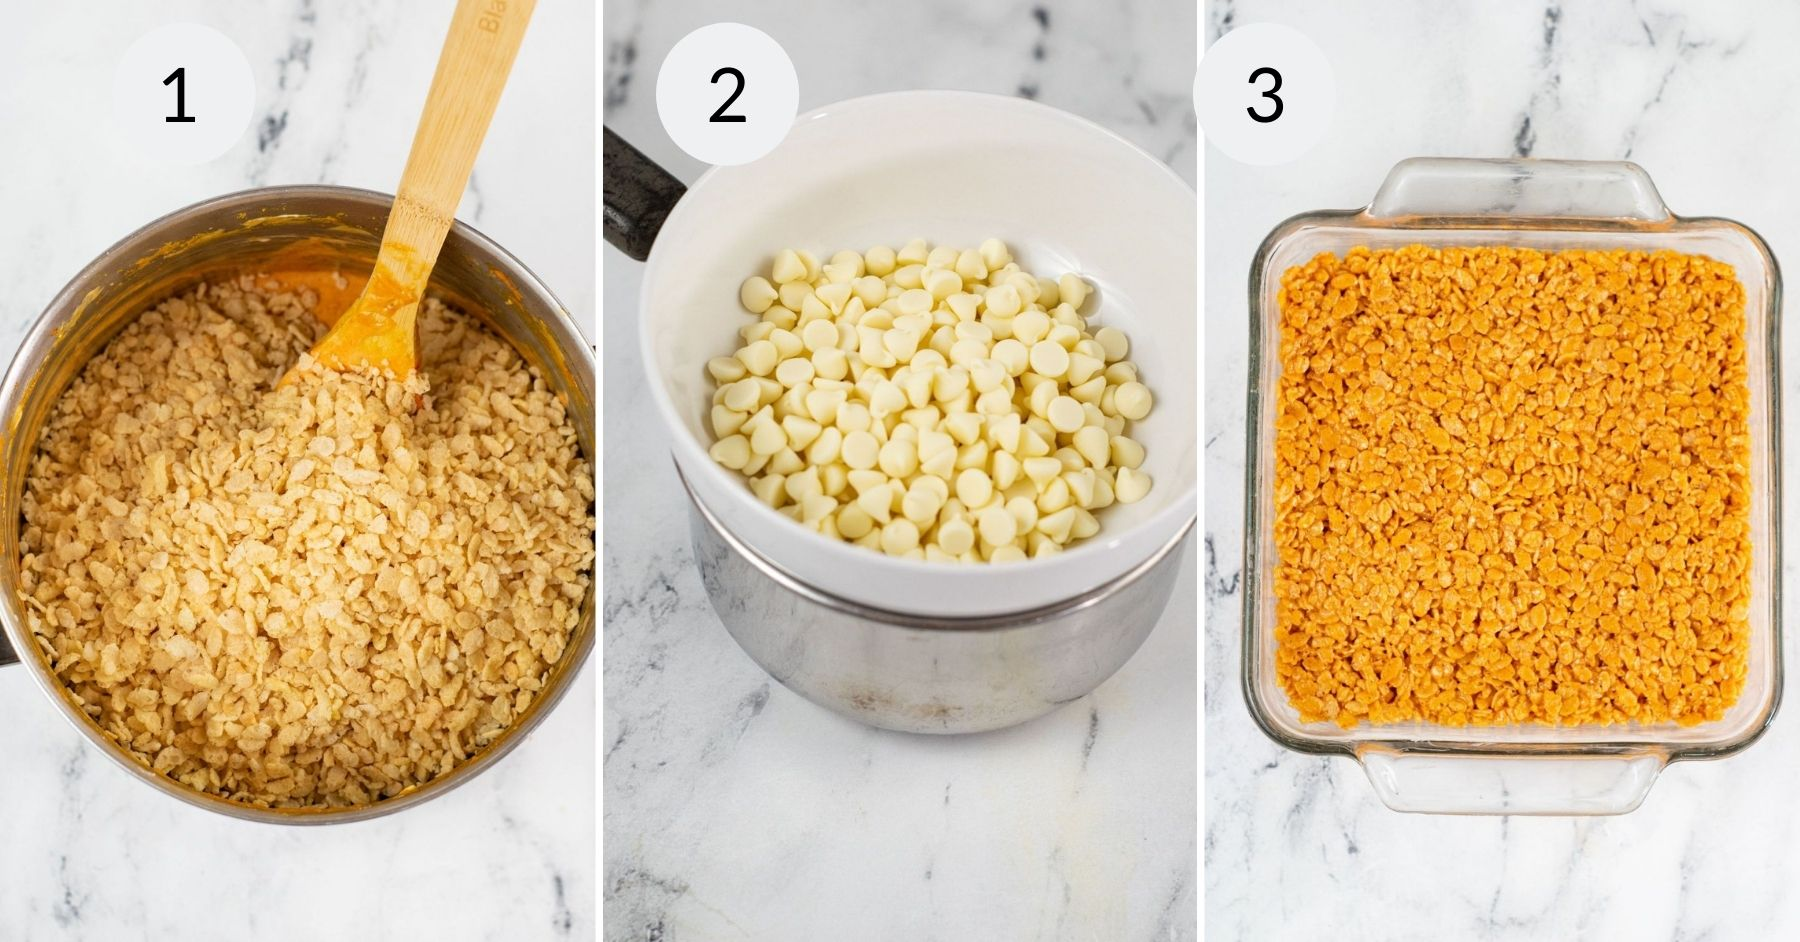 Mixing the krispies in with the melted marshmallow and pressed into the pan.